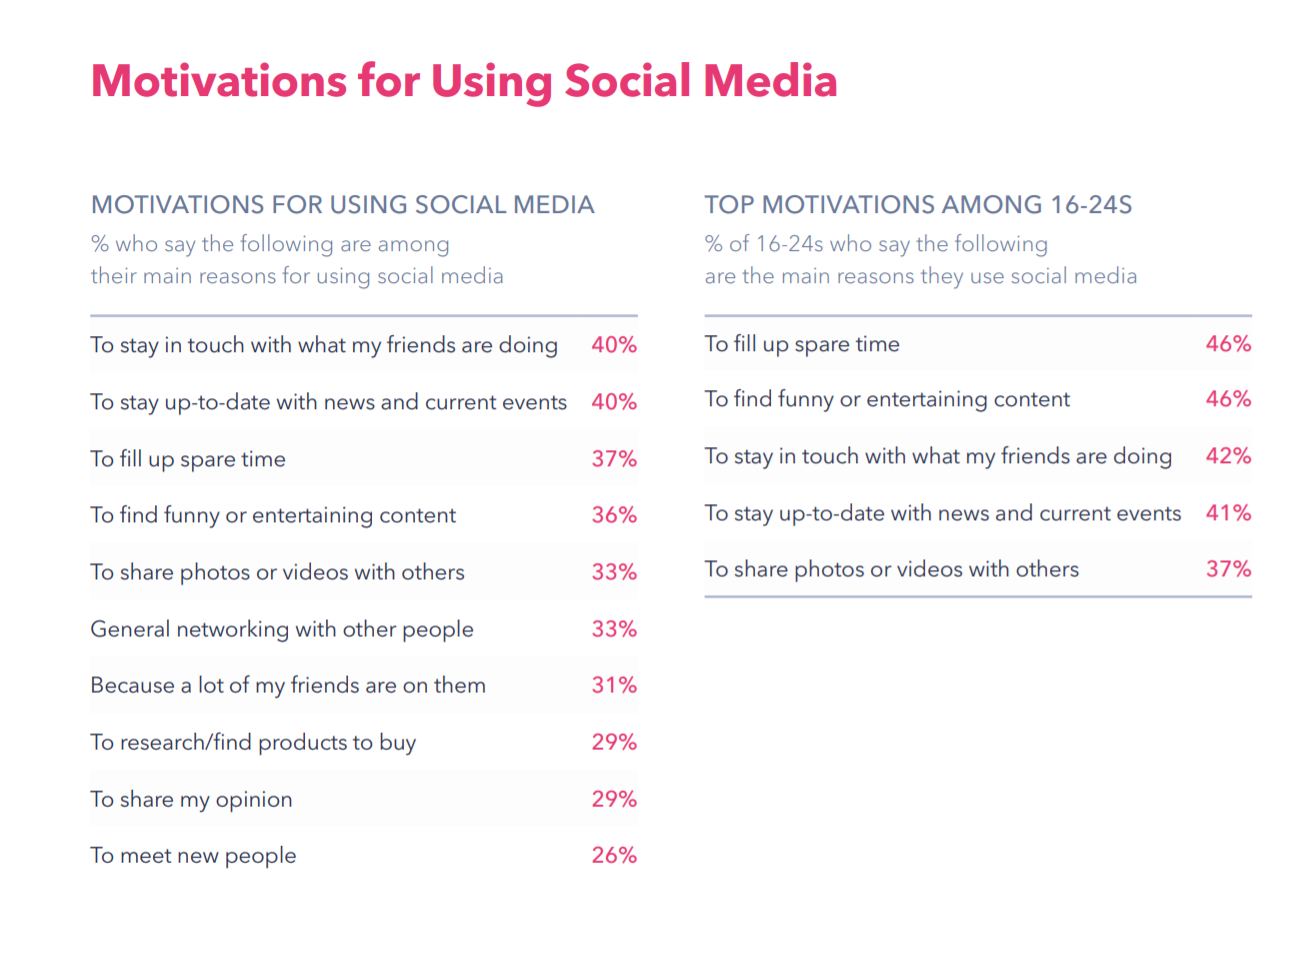 Top Reasons for Using Social Media